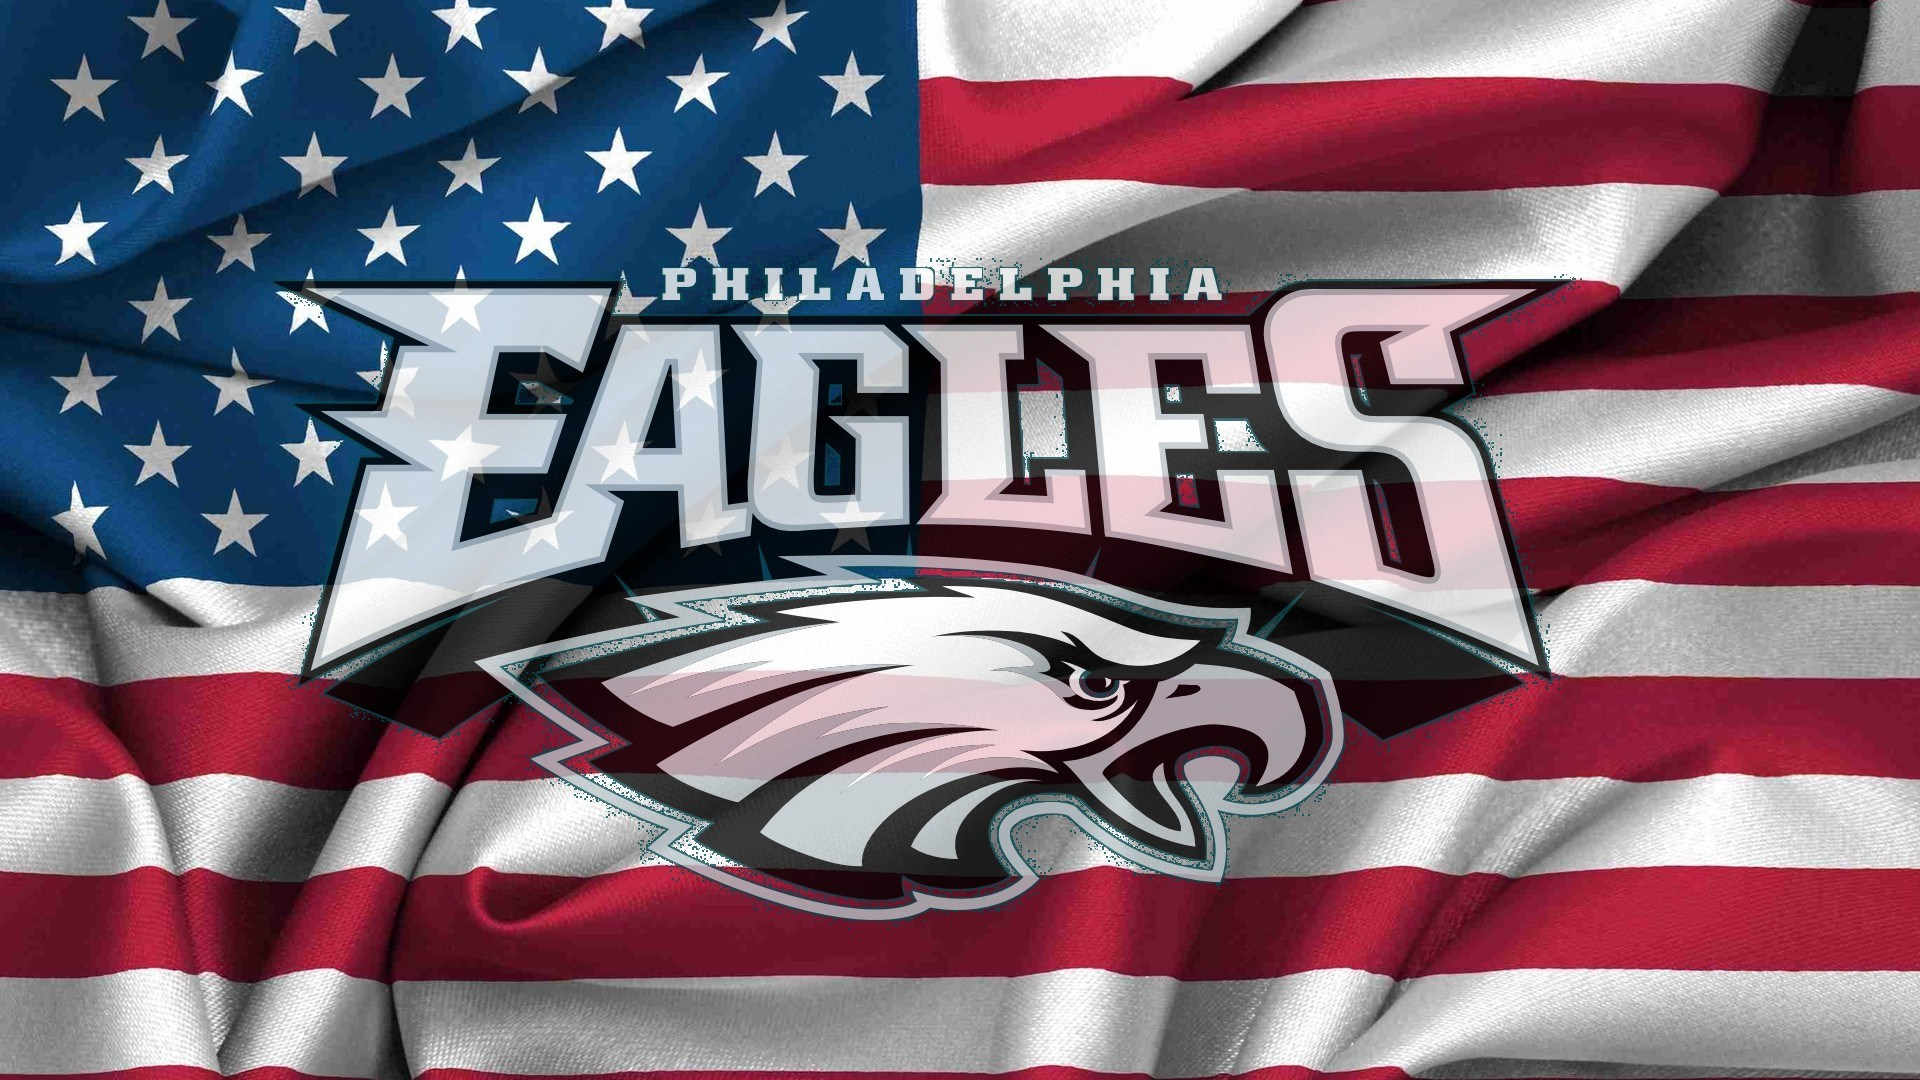 philadelphia-eagles-free-desktop-downloads-wallpaper-wp3809099